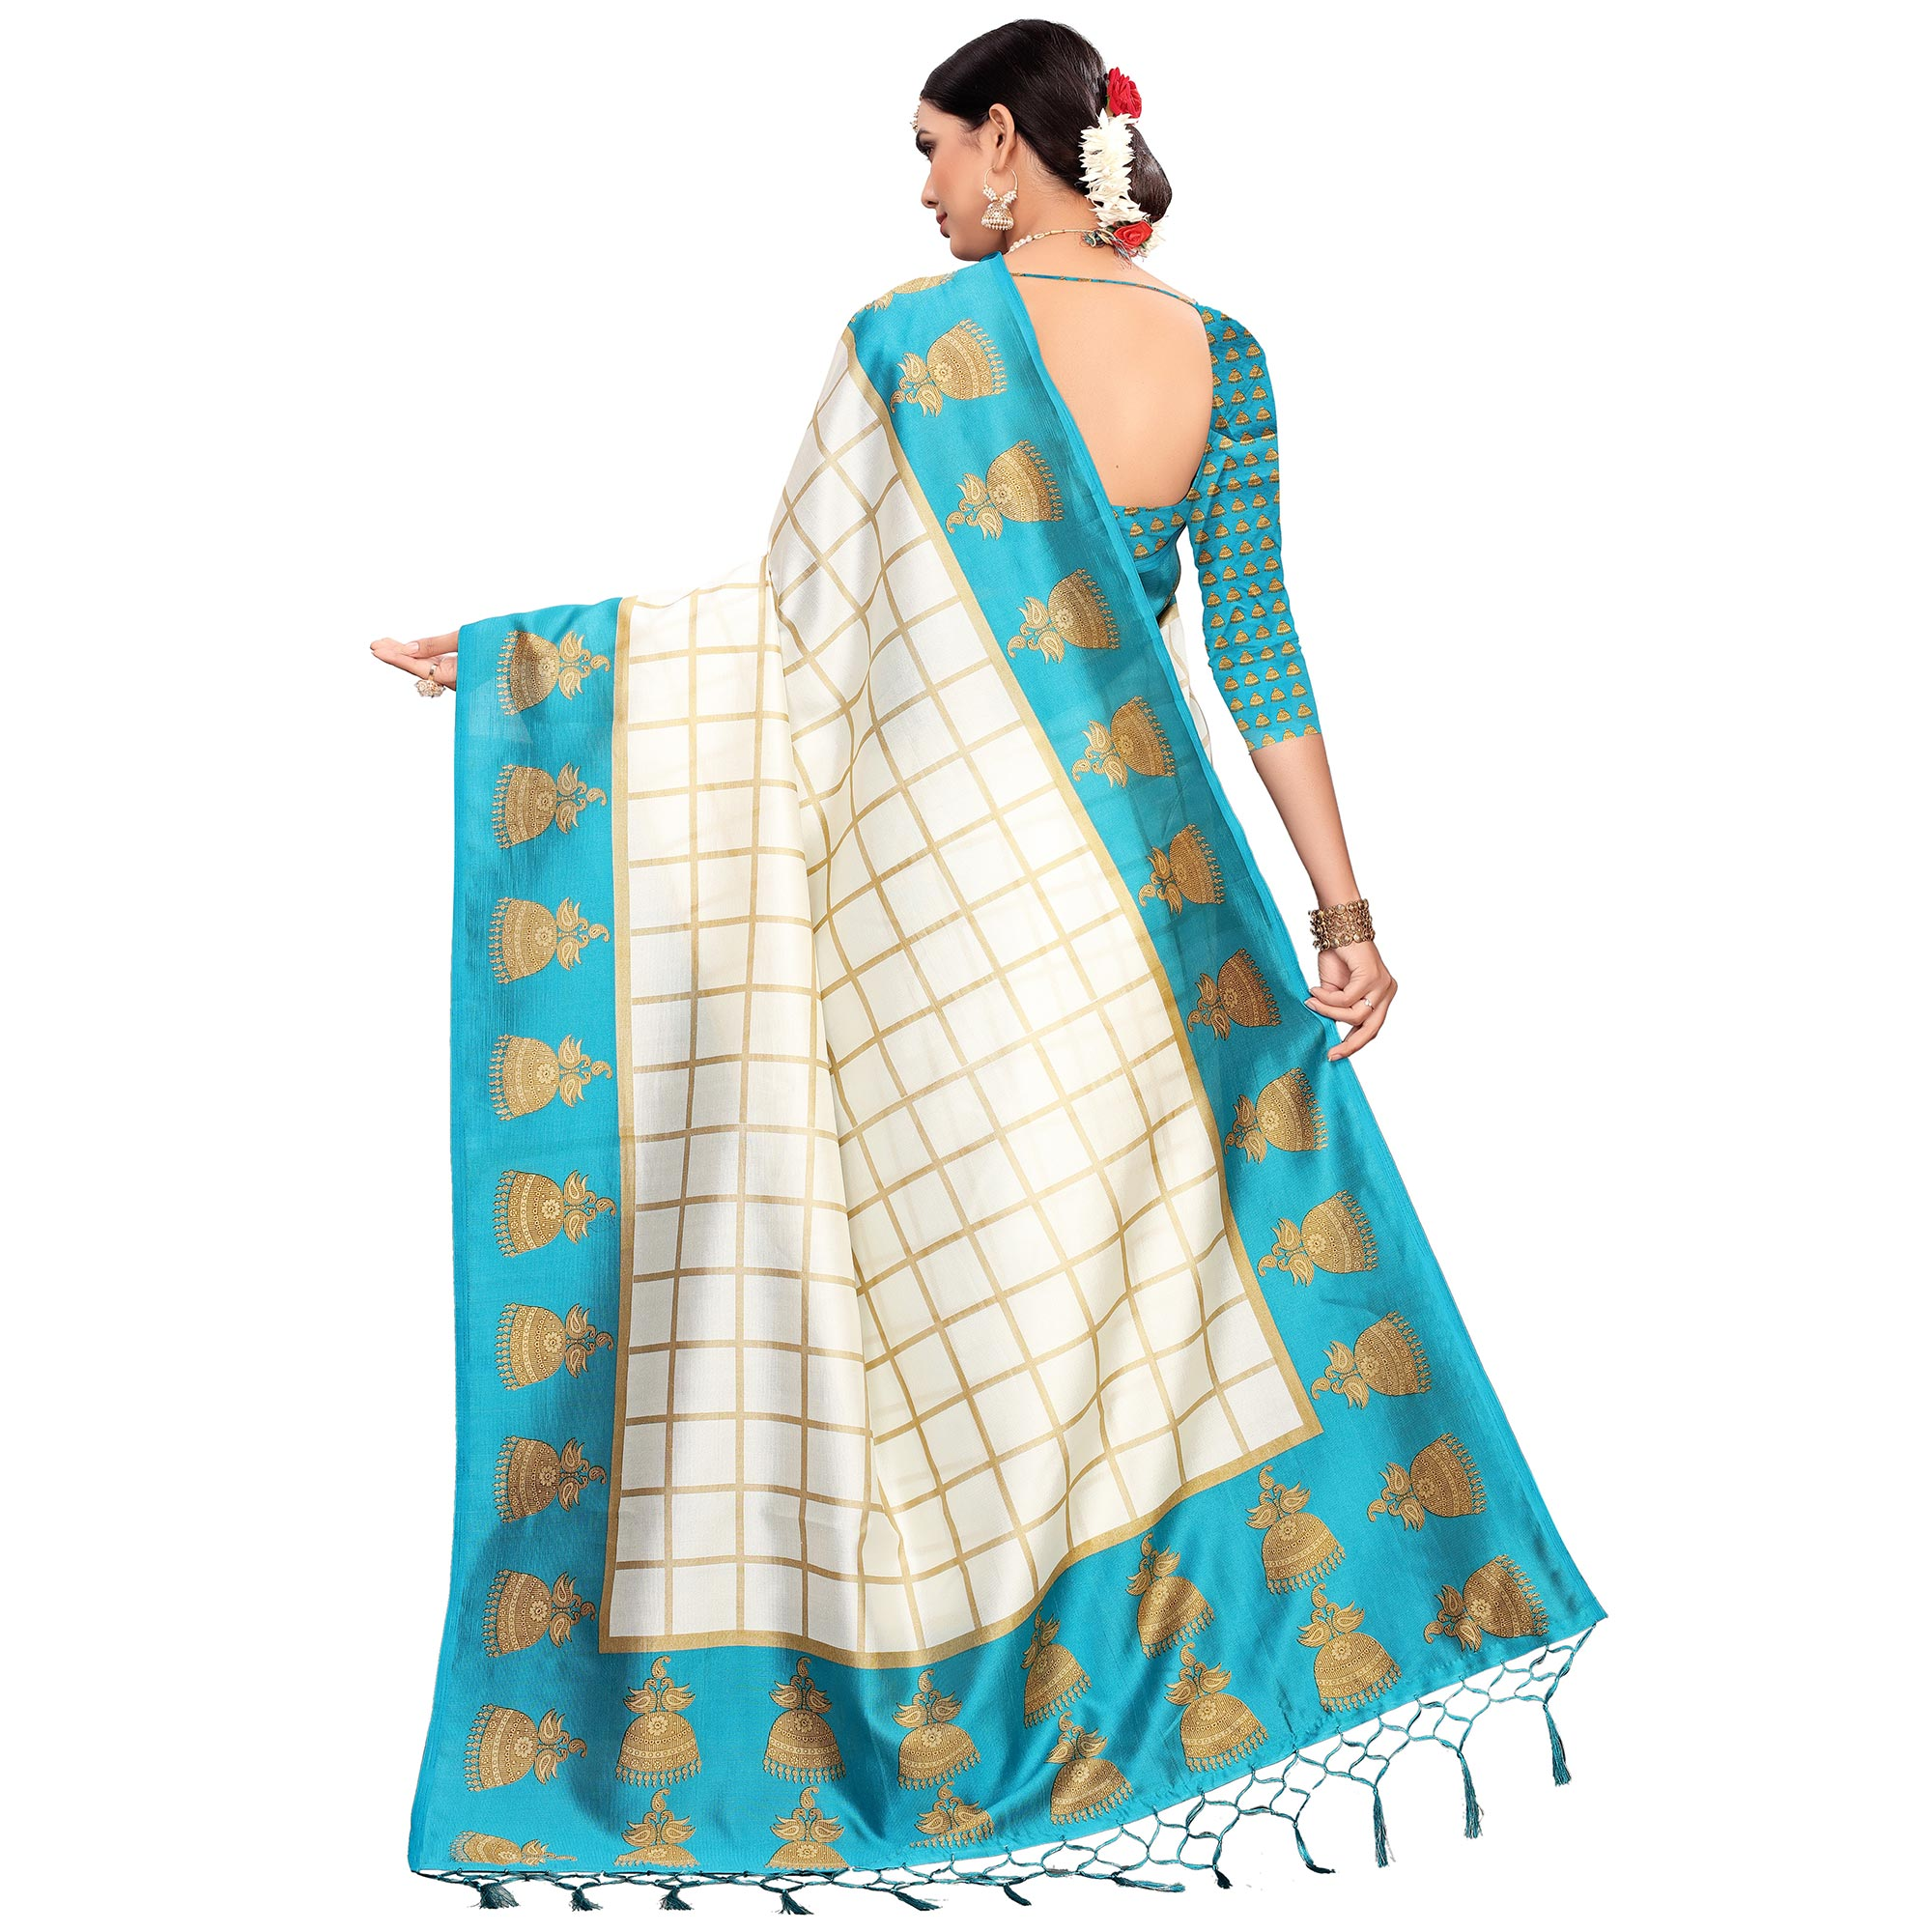 Engrossing Off White-Turquoise Blue Colored Festive Wear Printed Mysore Silk Saree